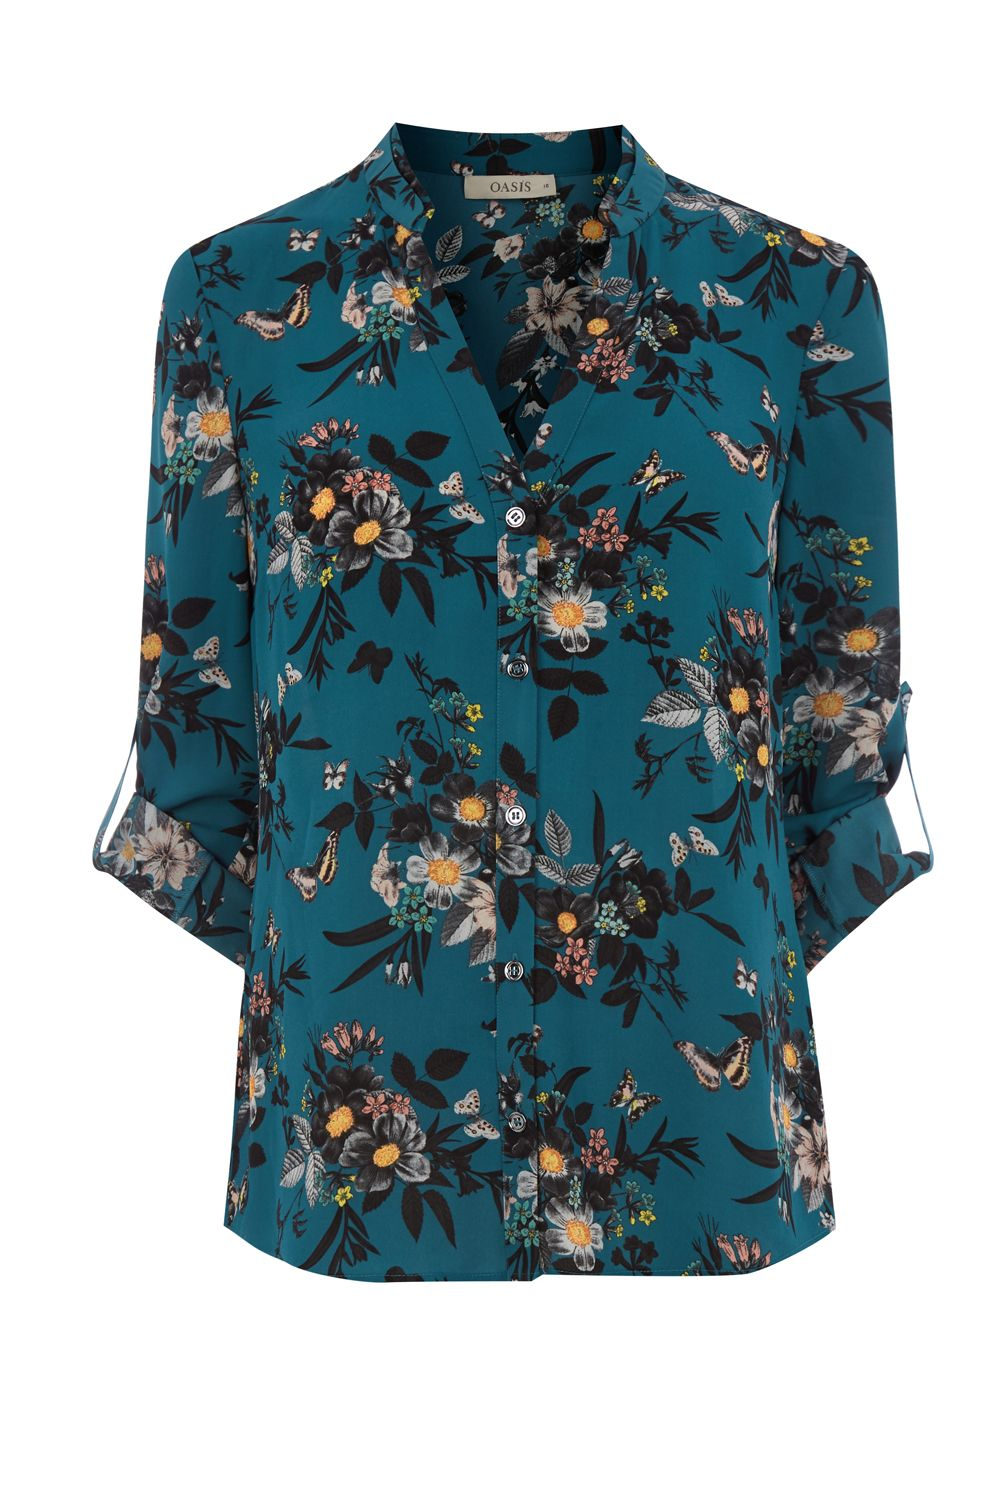 Oasis Ann Marie Frill Front Shirt, Multi-Coloured